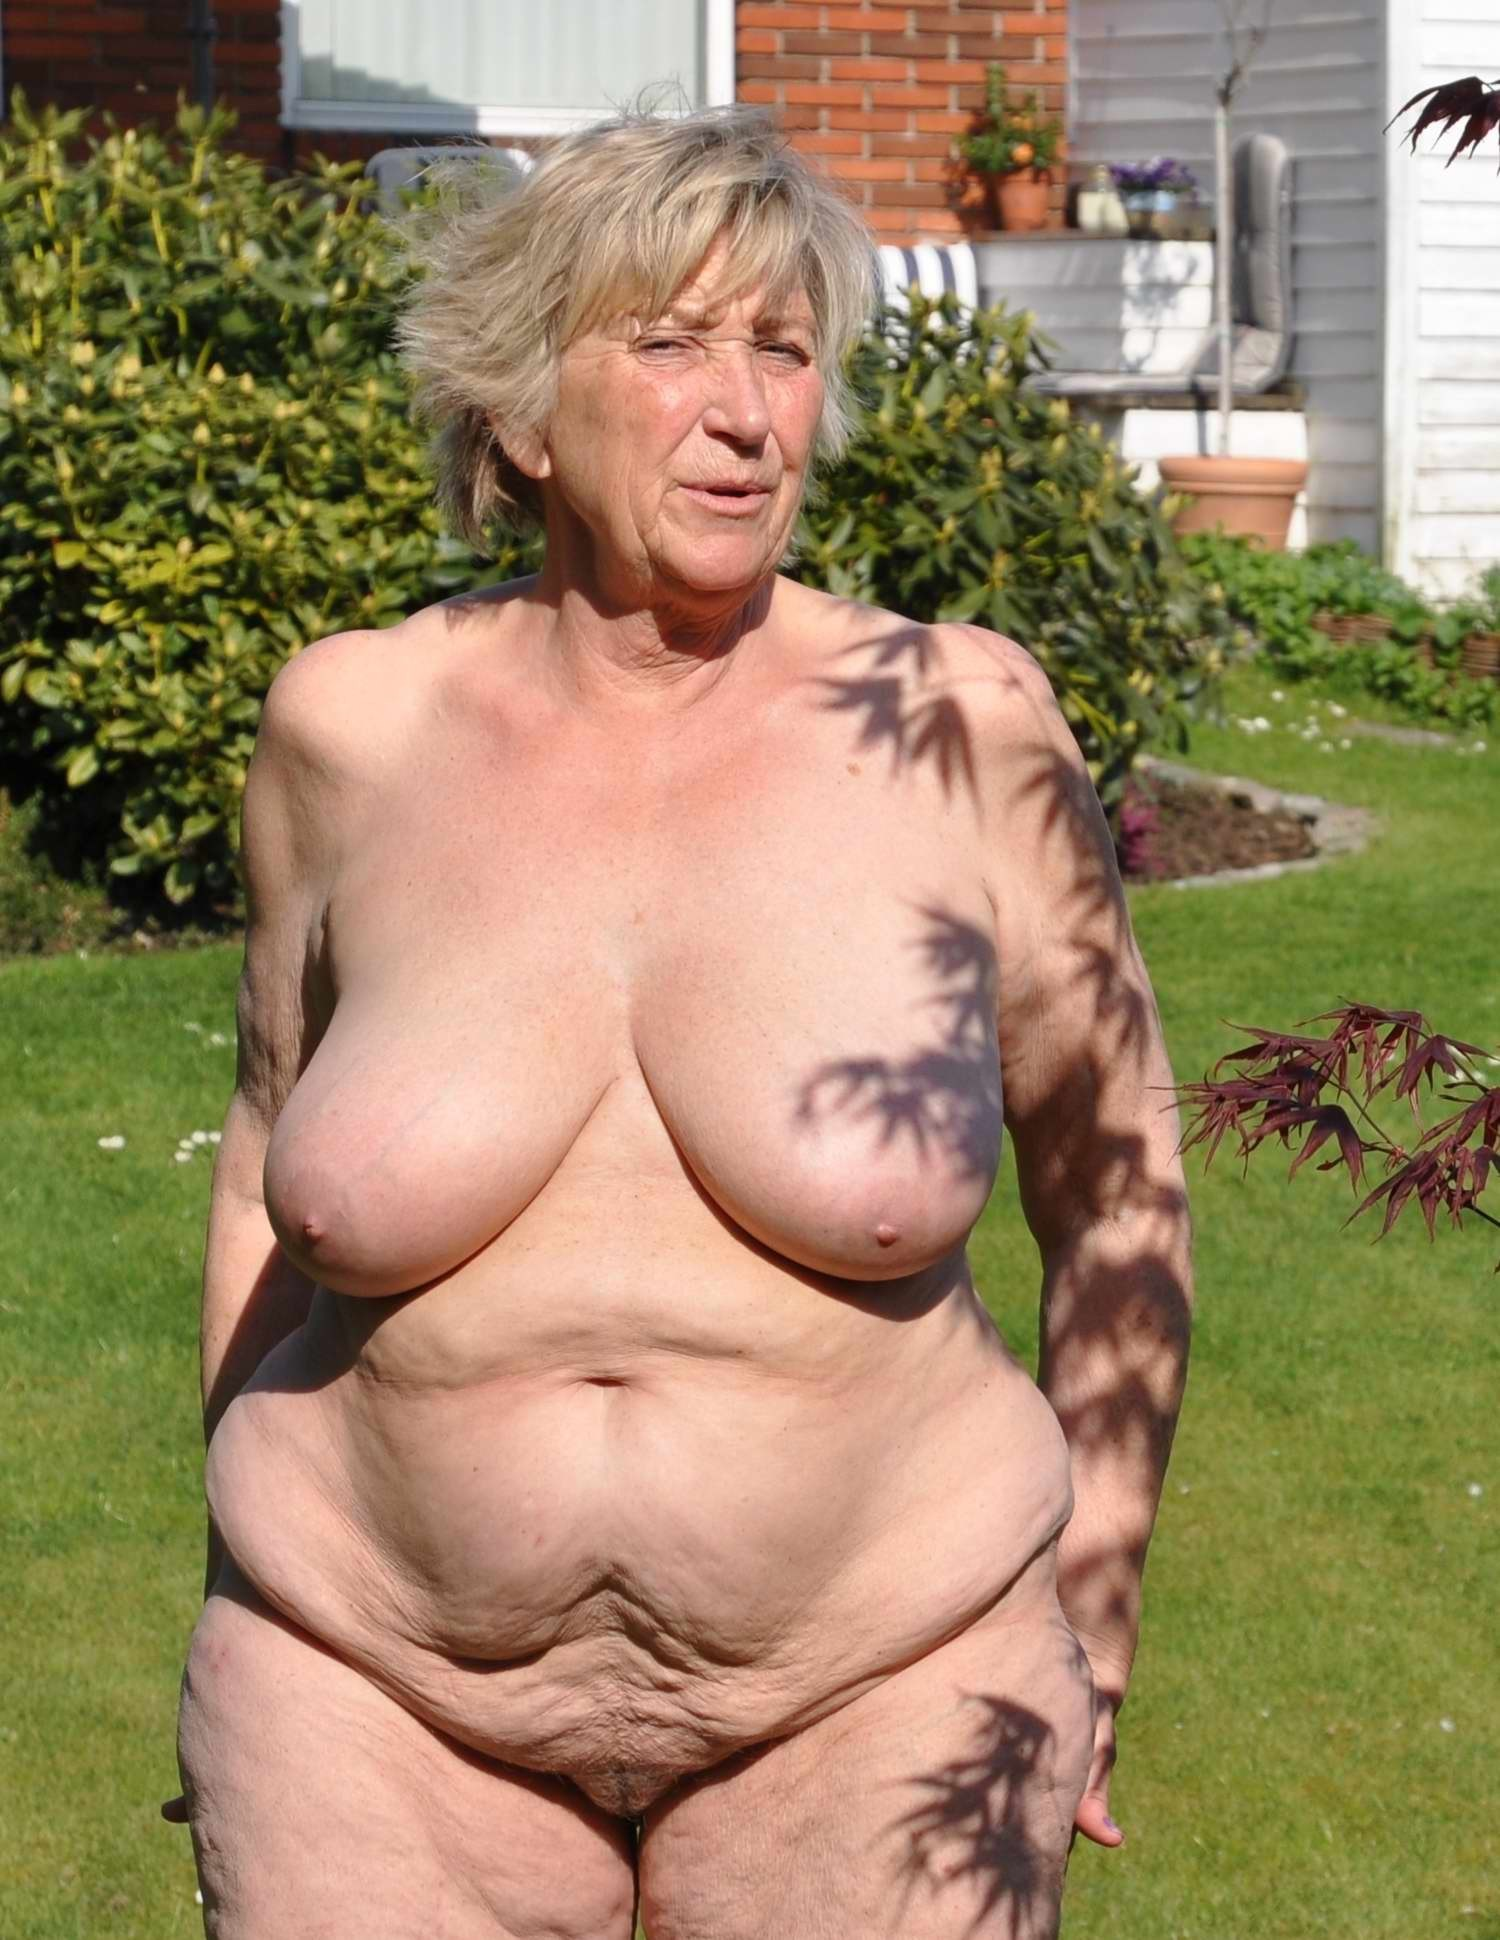 big-breasted gilf shows her all-natural boobies